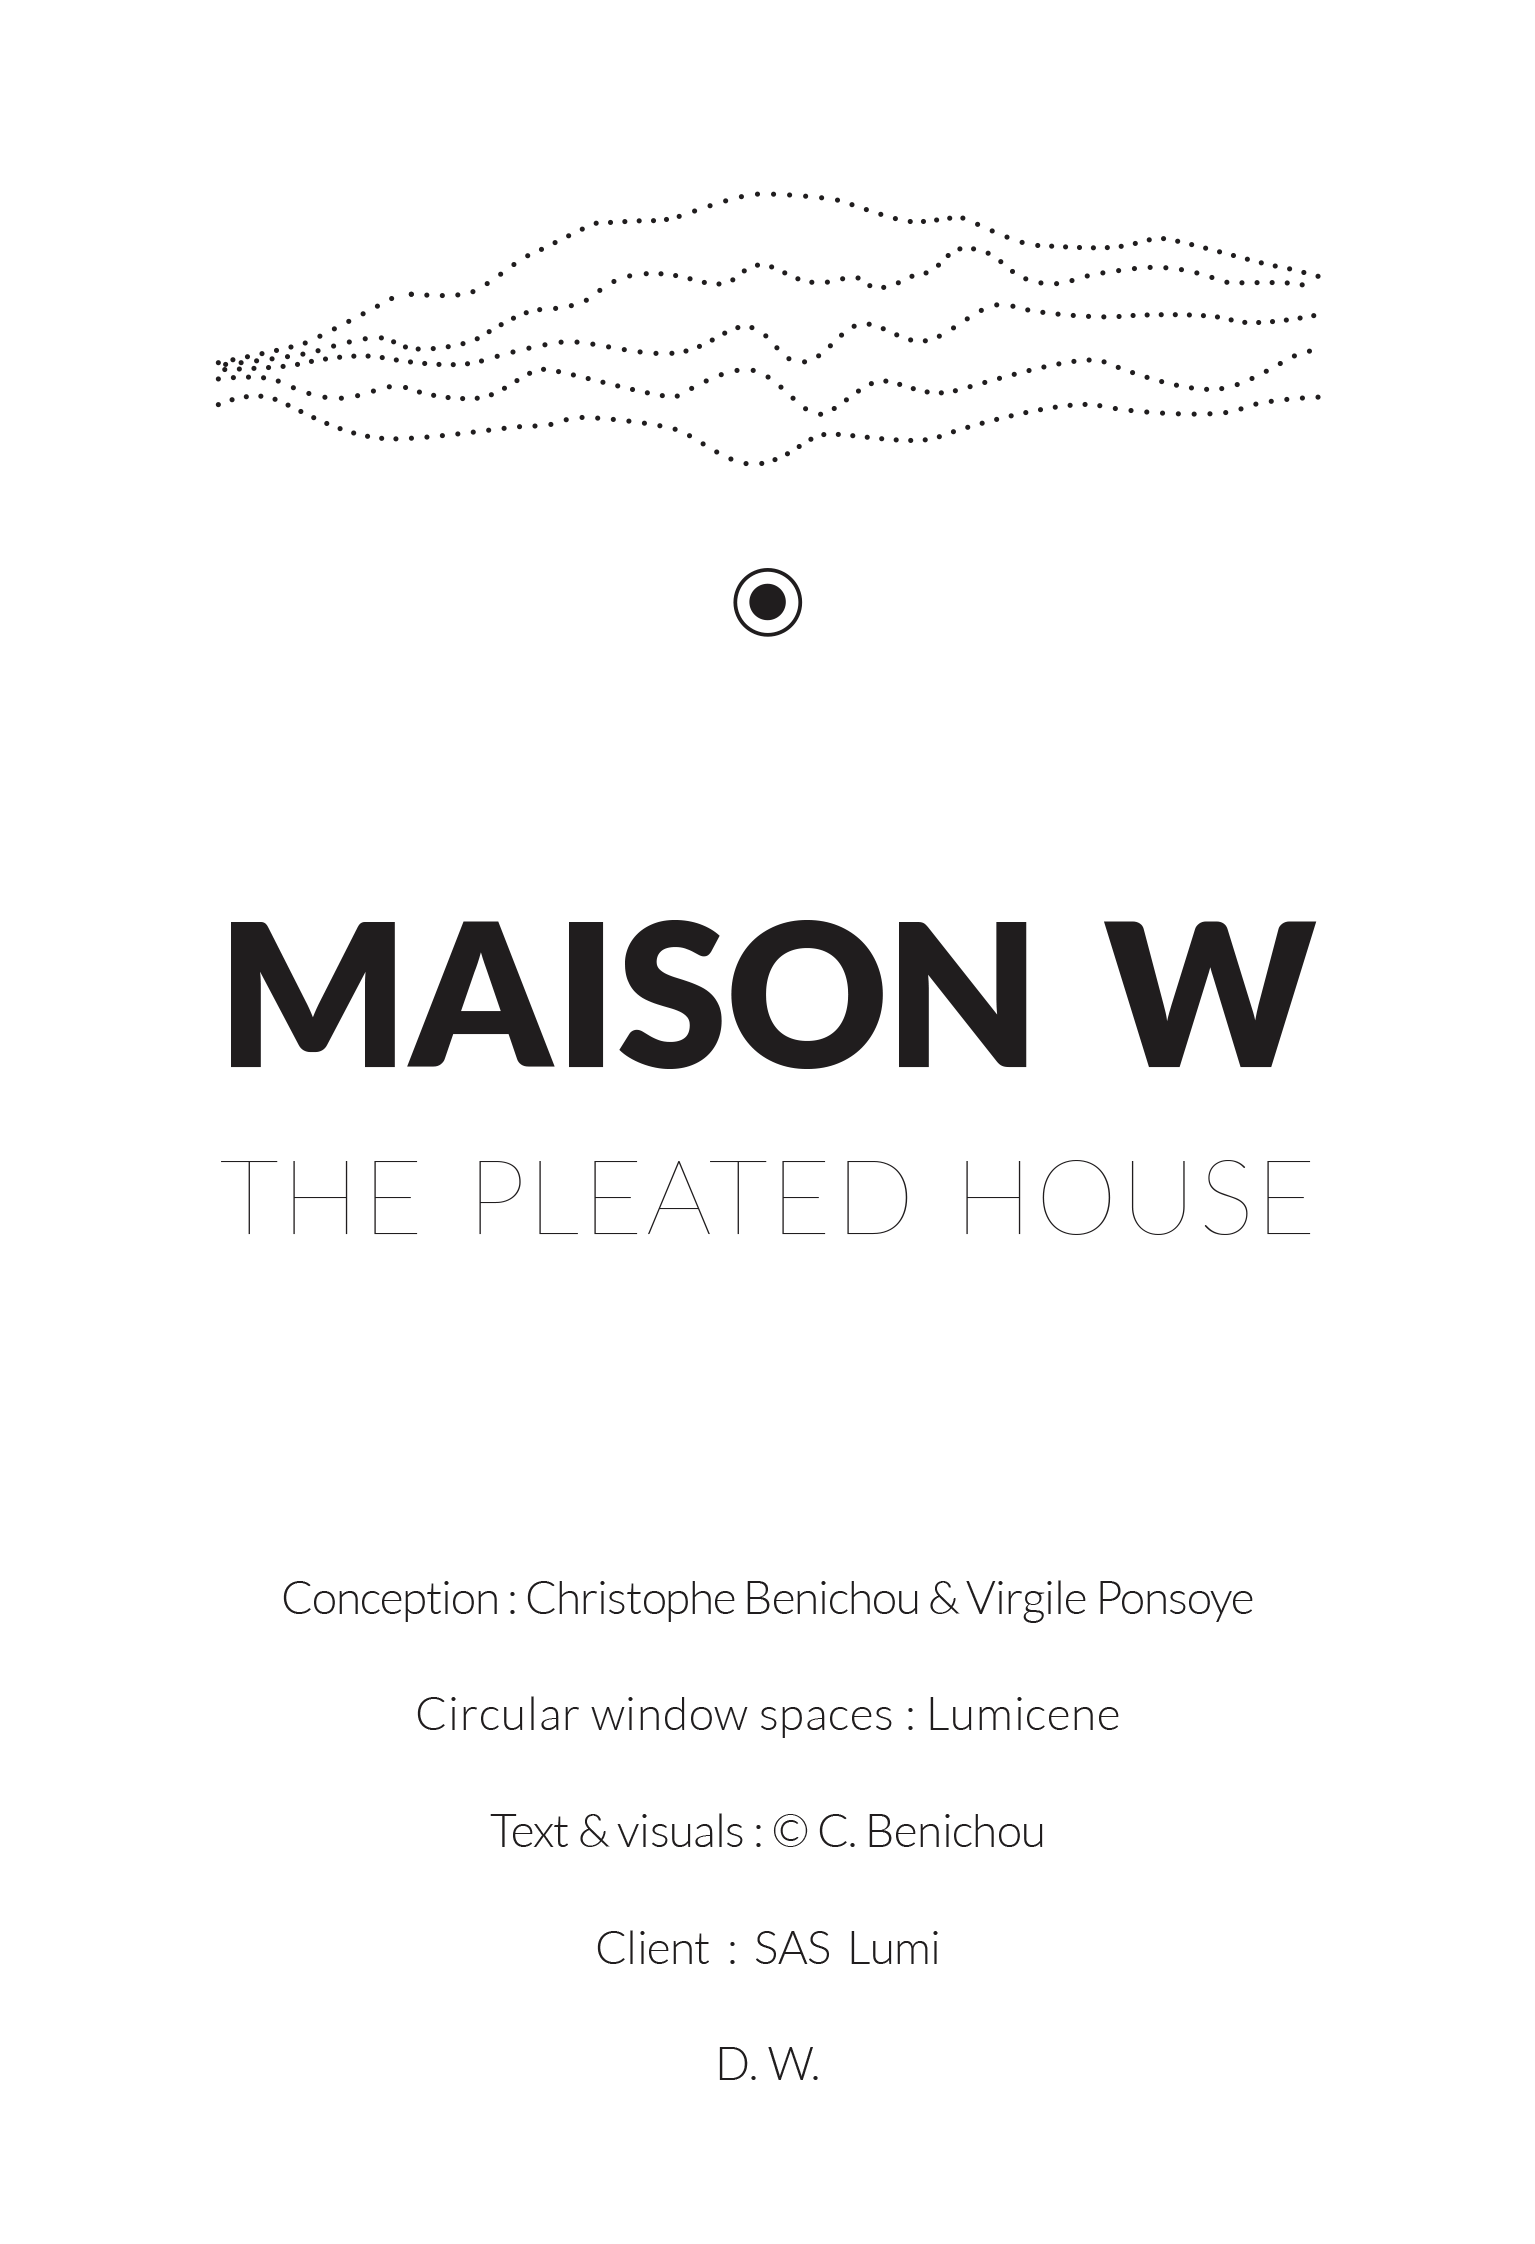 Maison W-the pleated house-logo-ENG